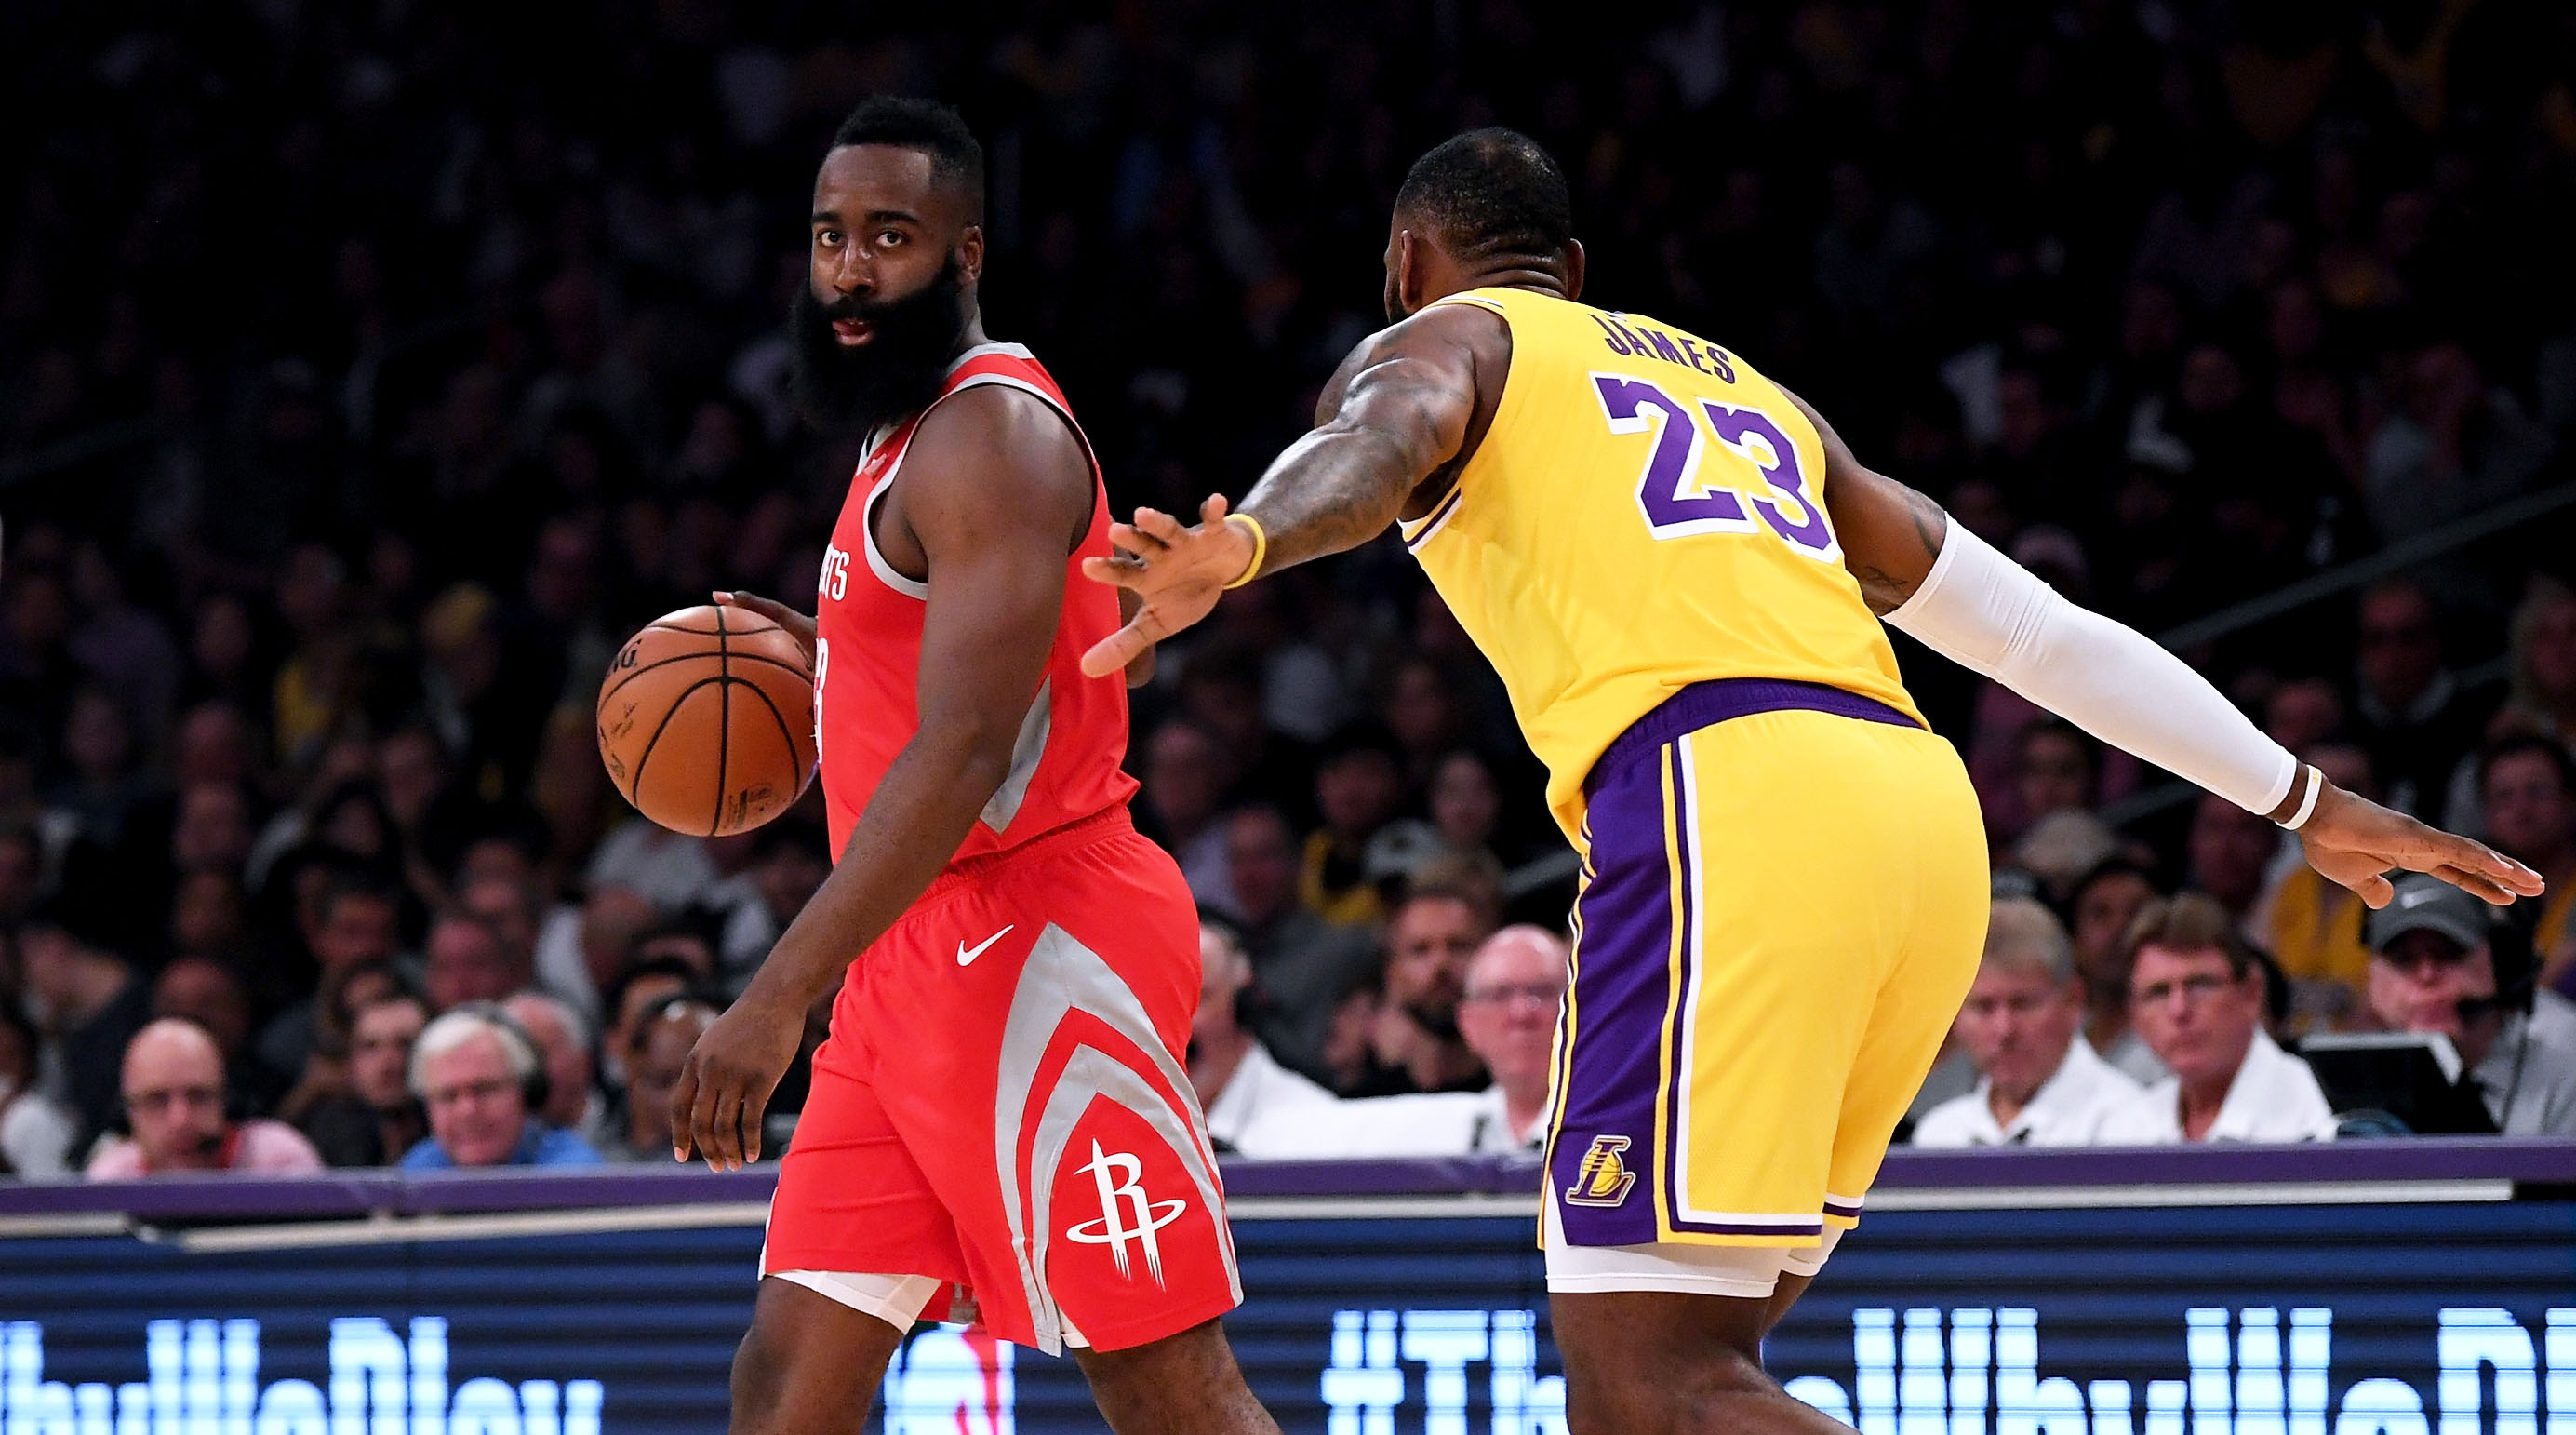 With James Harden having a transcendent year and LeBron having a troubling one, SI's All-NBA and All-Defensive teams have plenty of intrigue this season. We present selections and explanations for every spot.